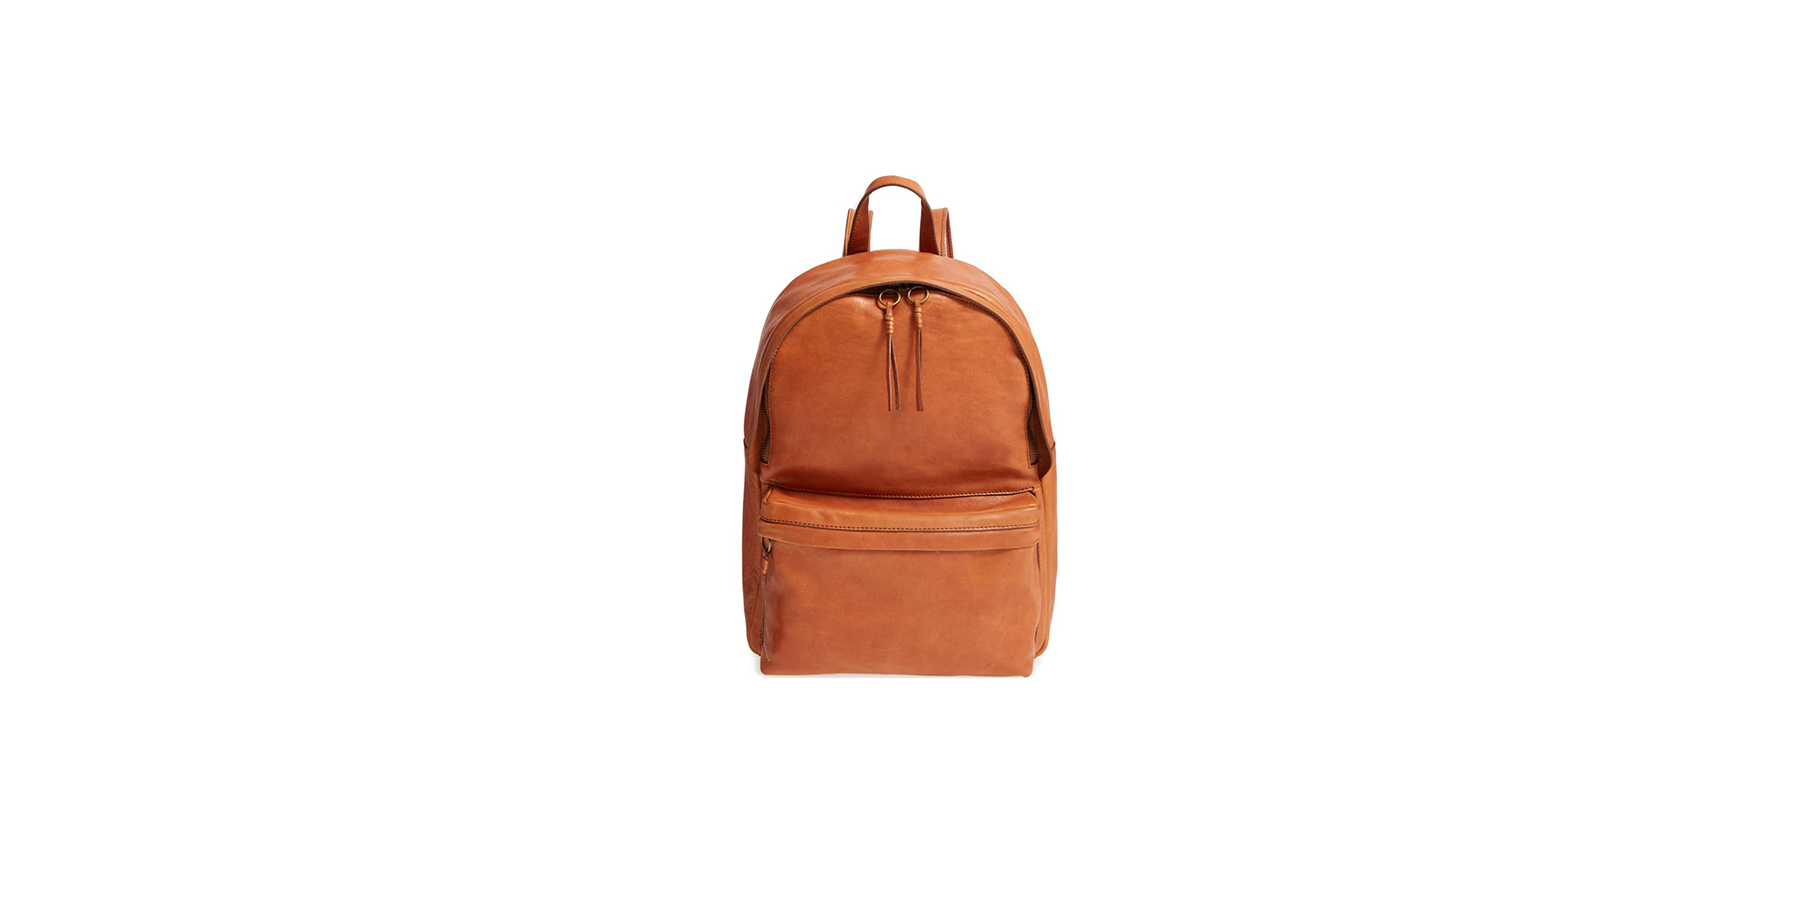 The Best Backpacks for Work